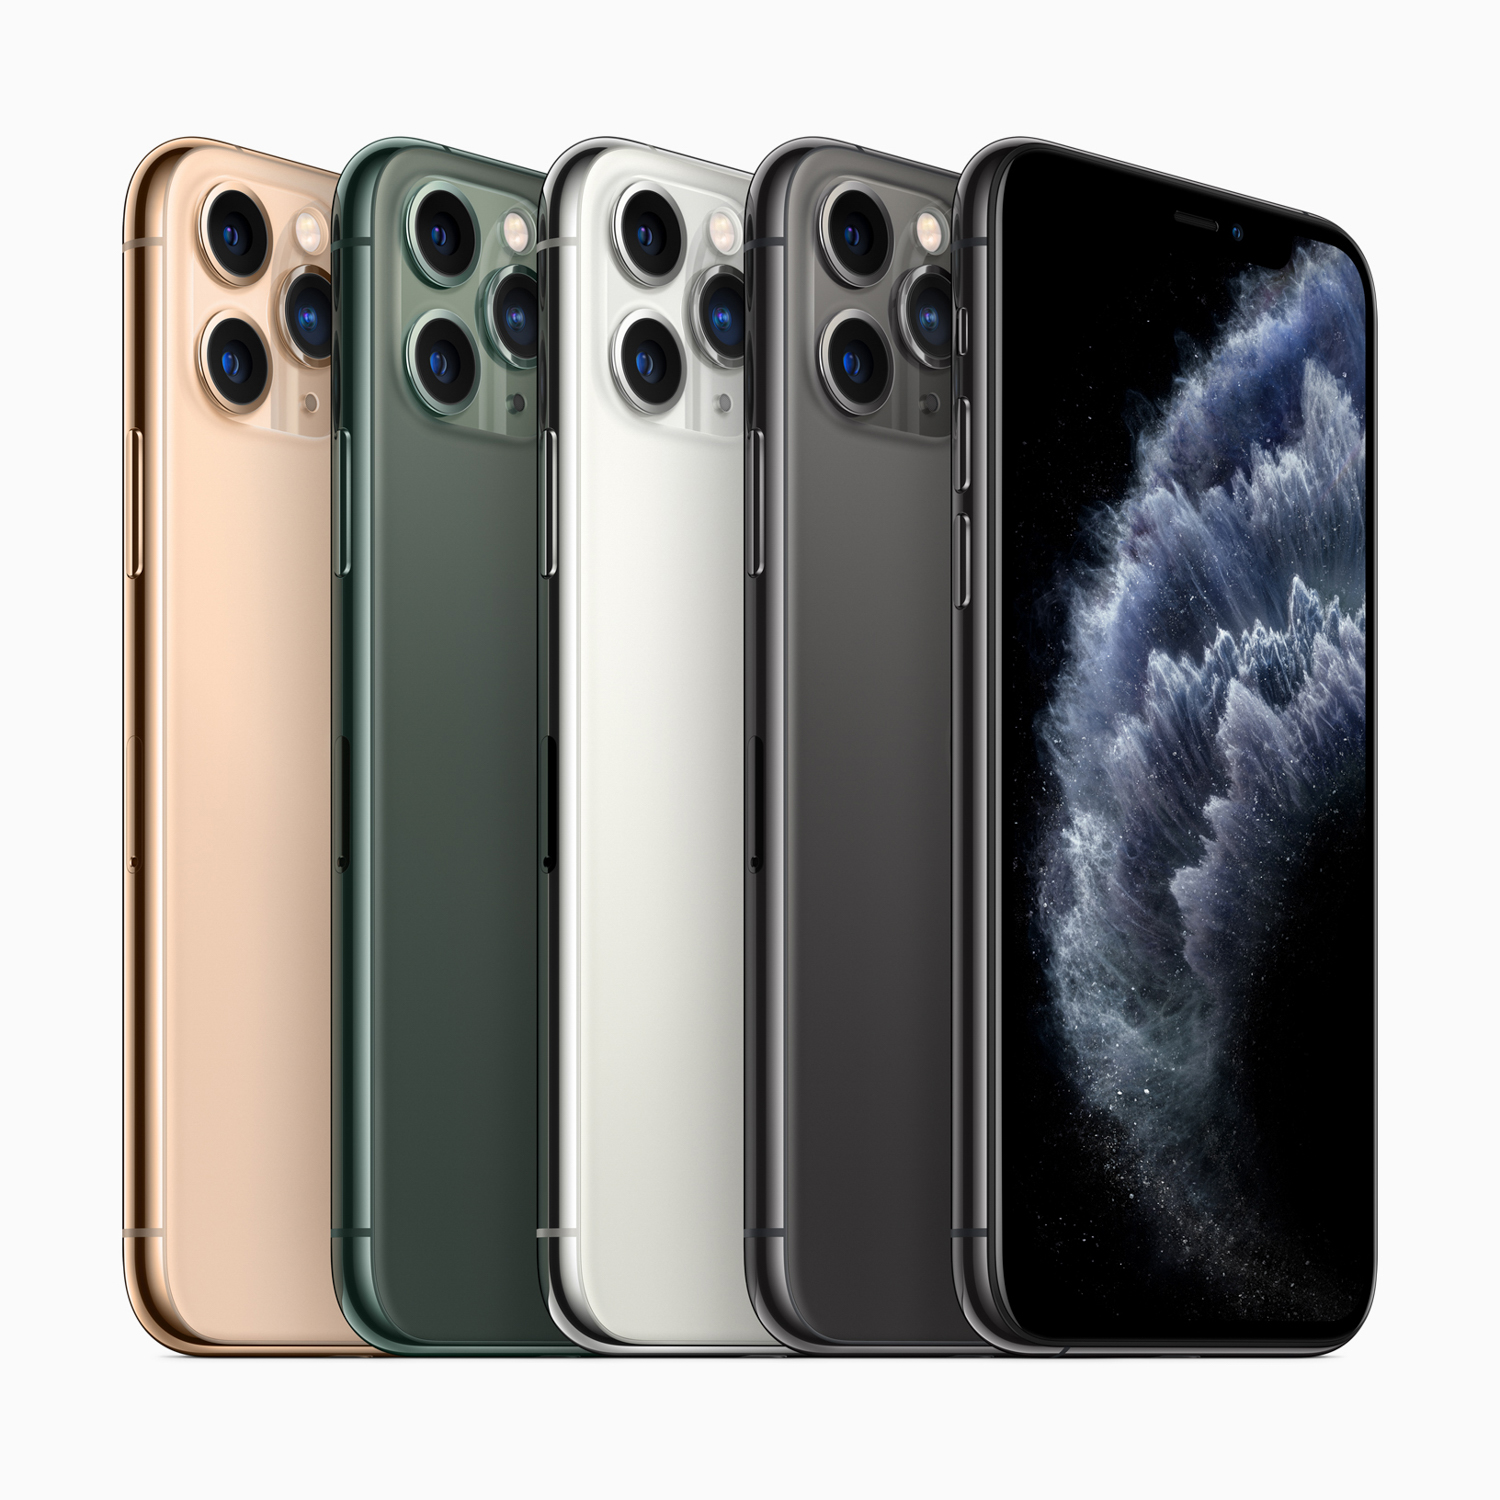 The iPhone 11 Pro Features a New Triple Lens and Night Mode